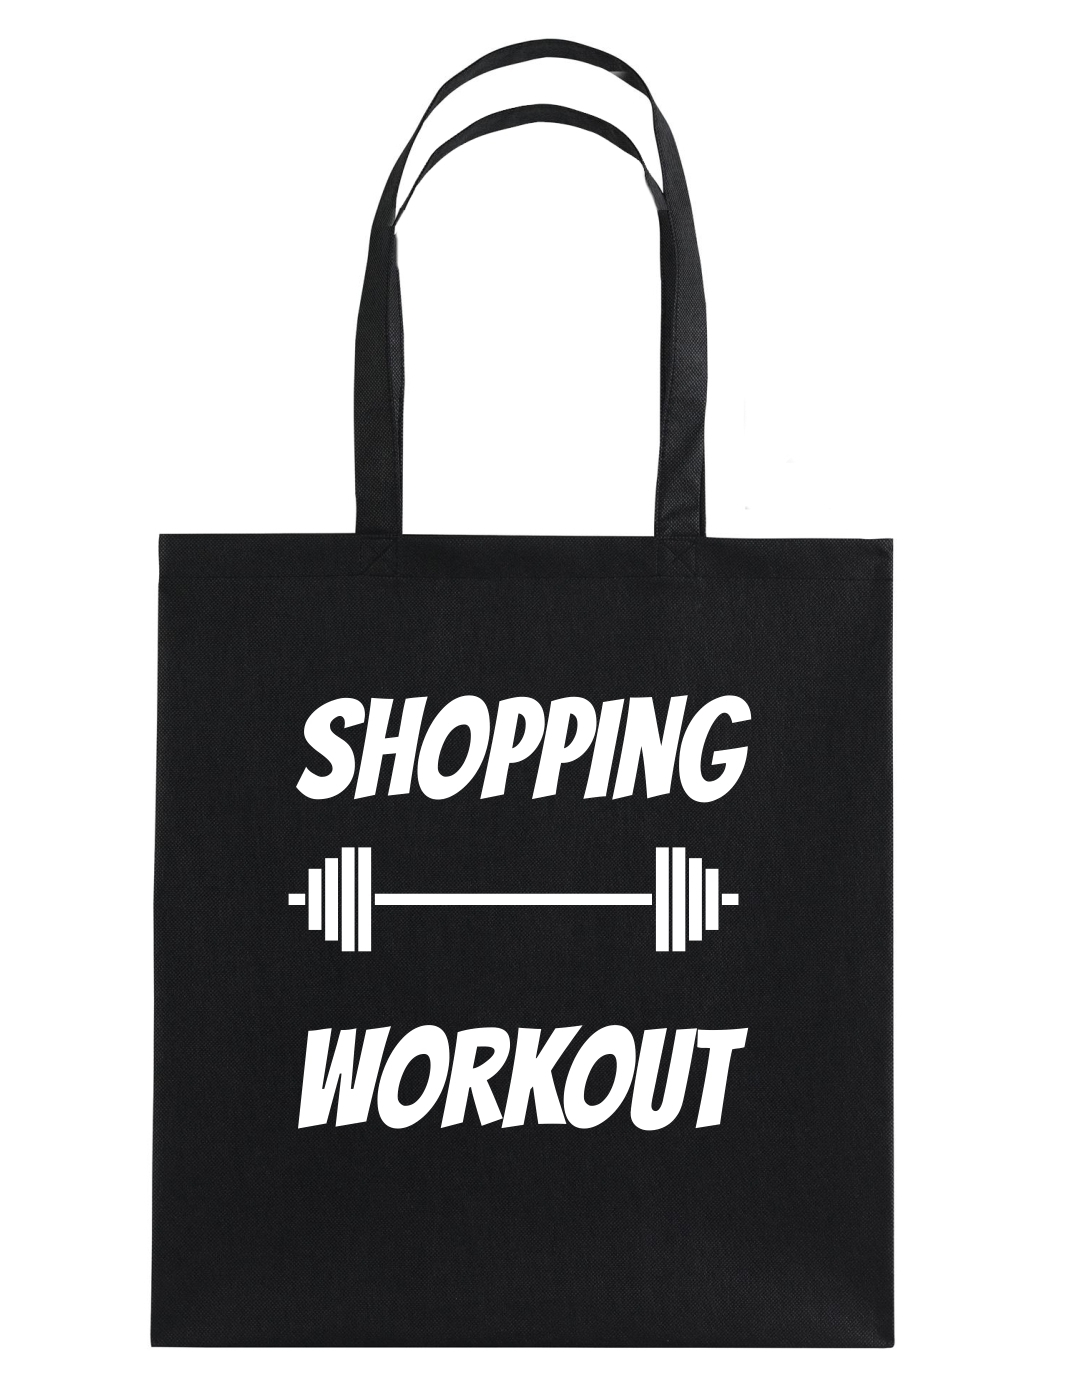 shopping workout katoenen tas